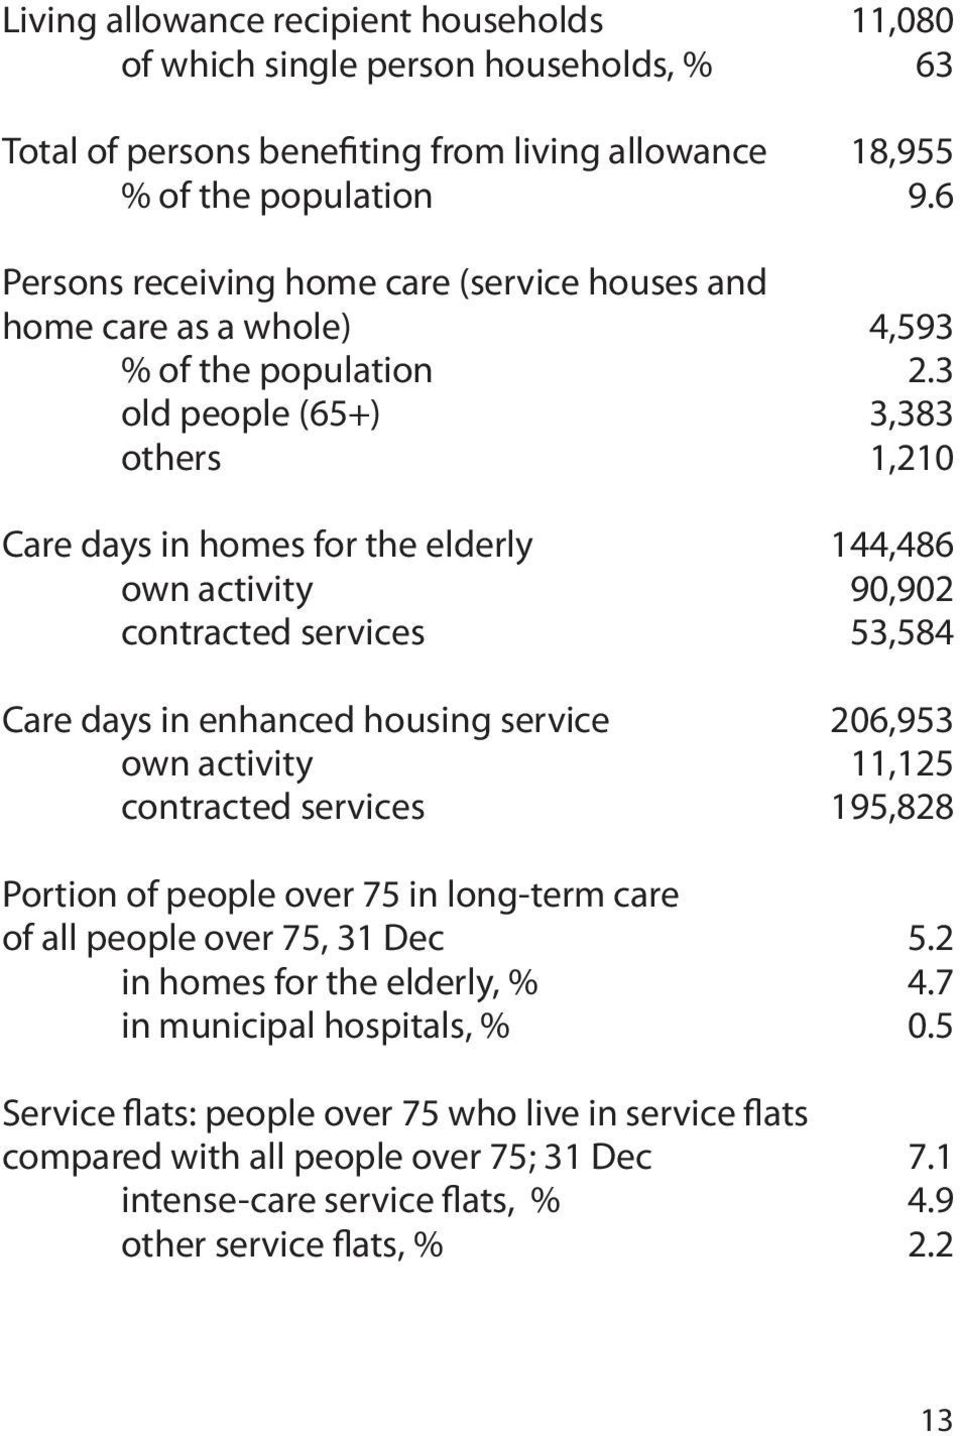 3 old people (65+) 3,383 others 1,210 Care days in homes for the elderly 144,486 own activity 90,902 contracted services 53,584 Care days in enhanced housing service 206,953 own activity 11,125